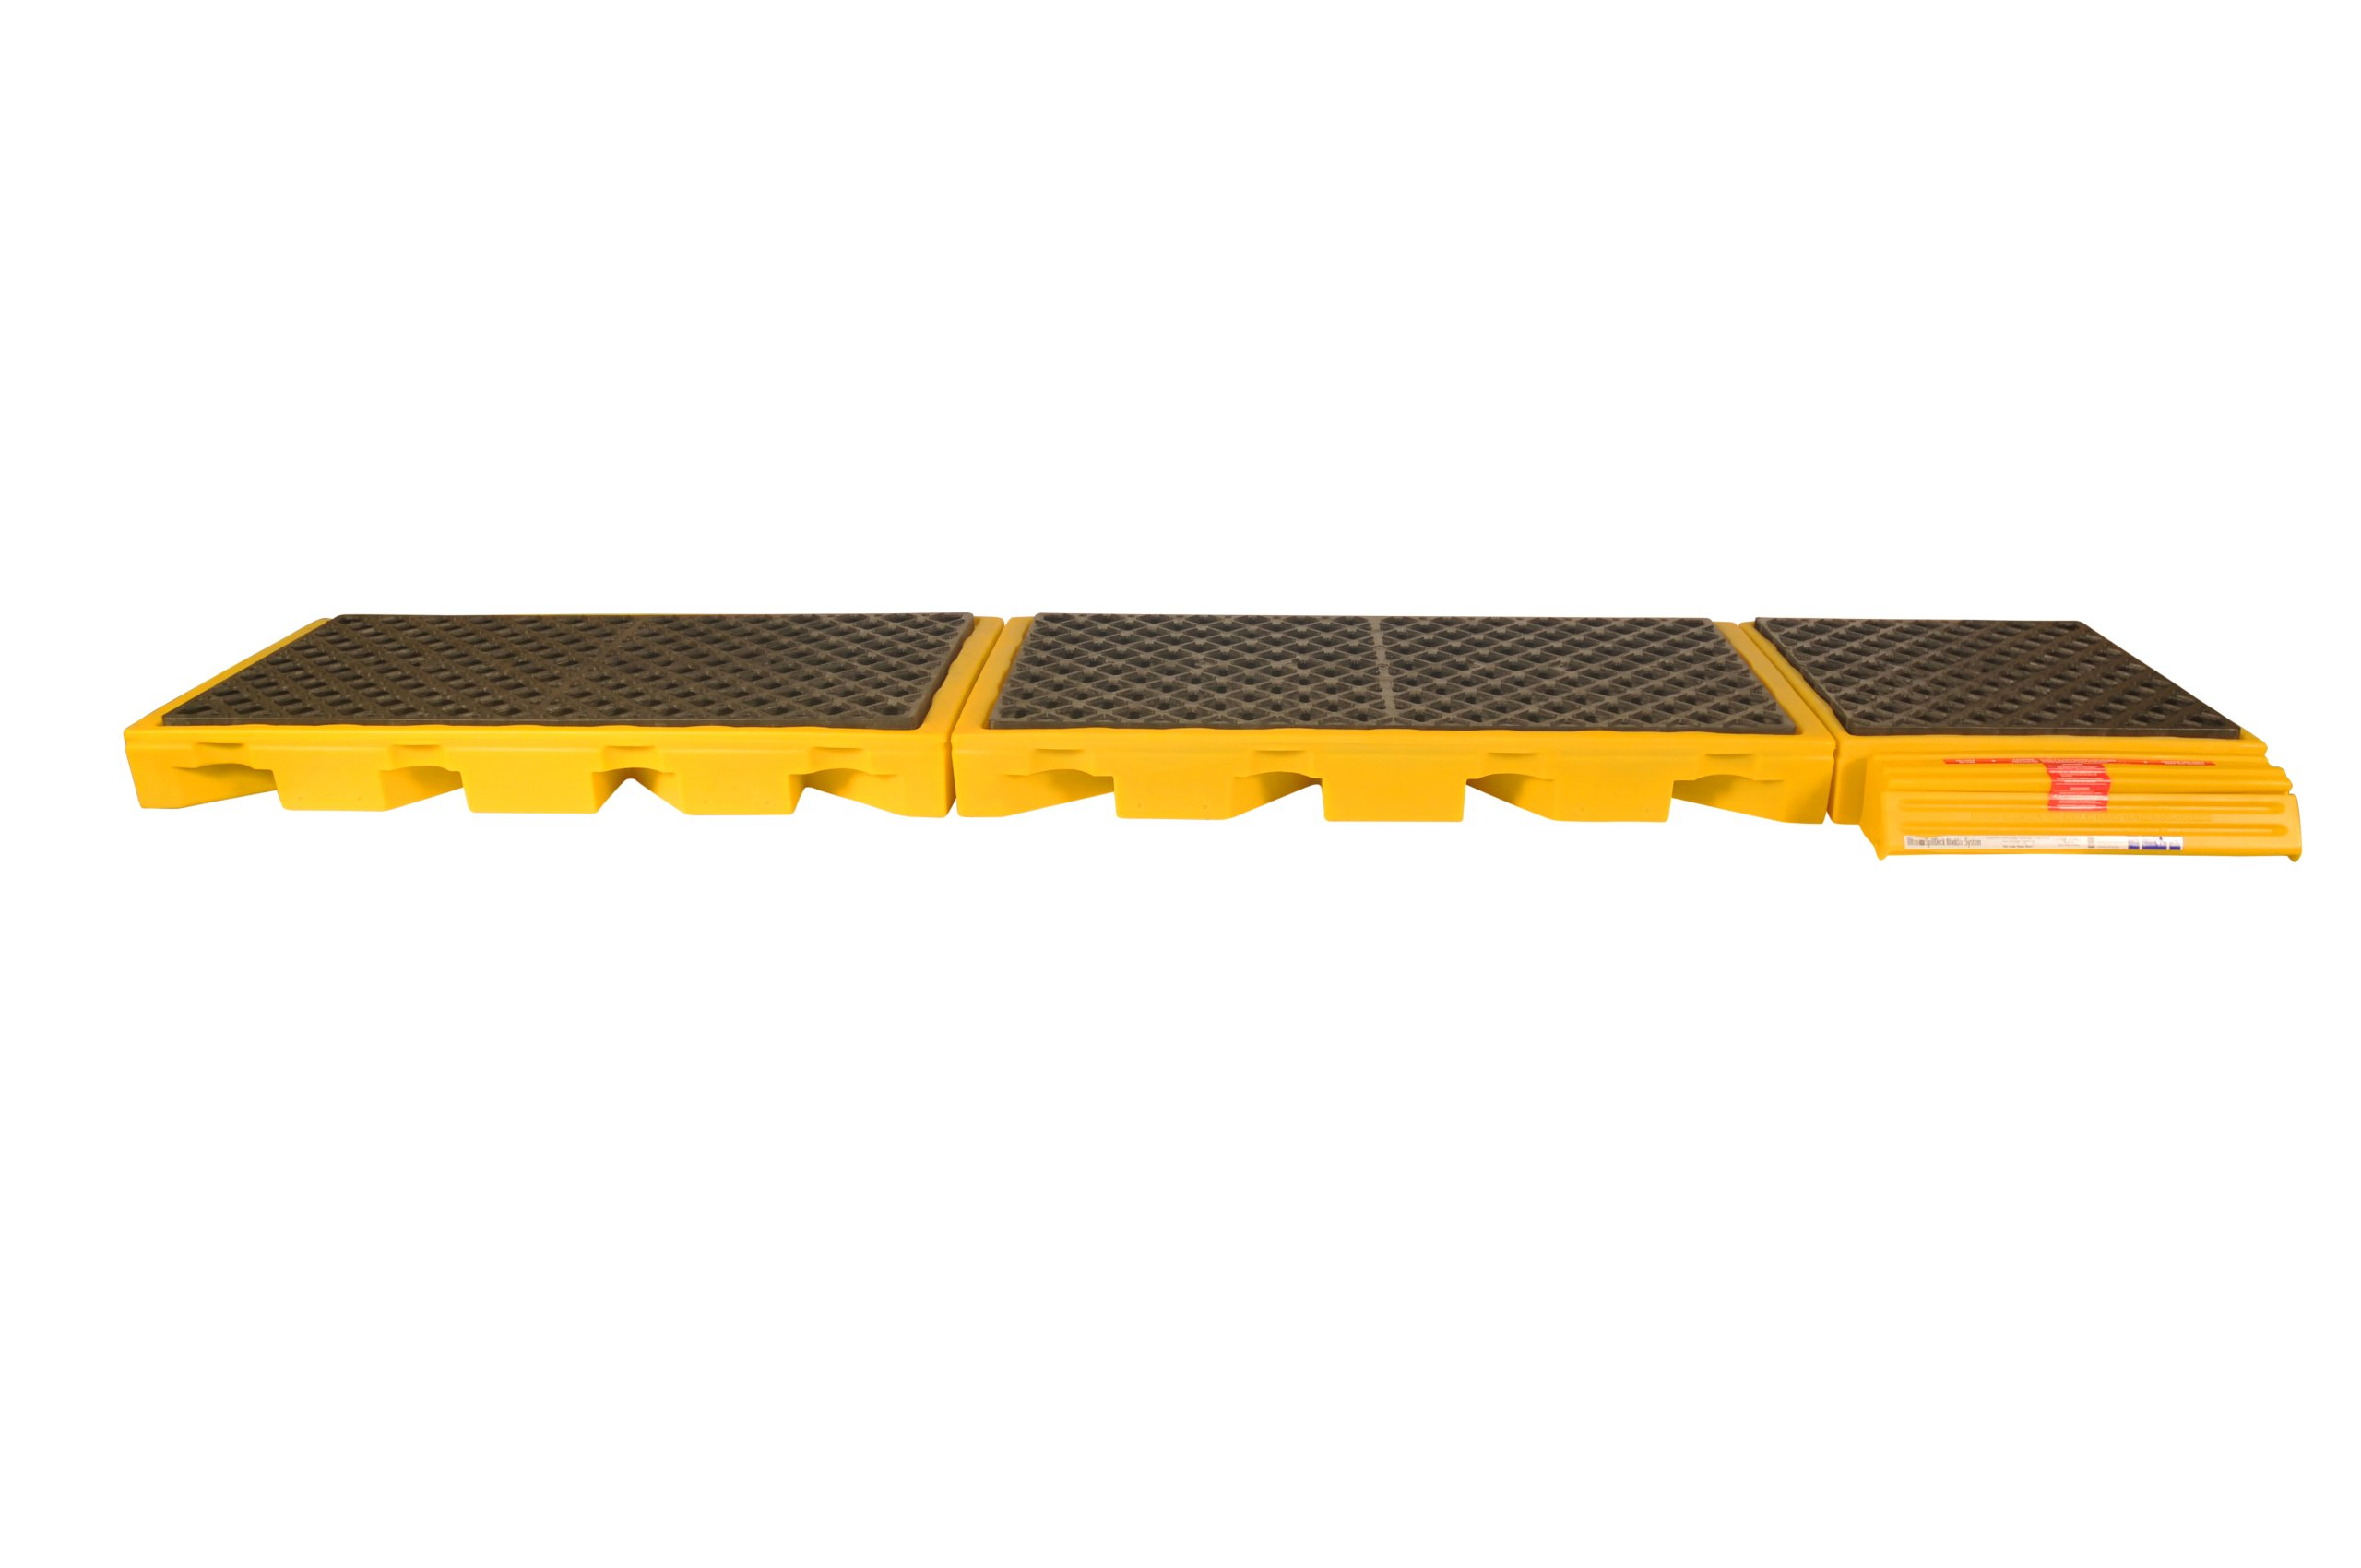 UltraTech 2333 Ultra InLine Spill Deck with 5-Drum, 7500 lbs Load Capacity, 5 Year Warranty, Yellow